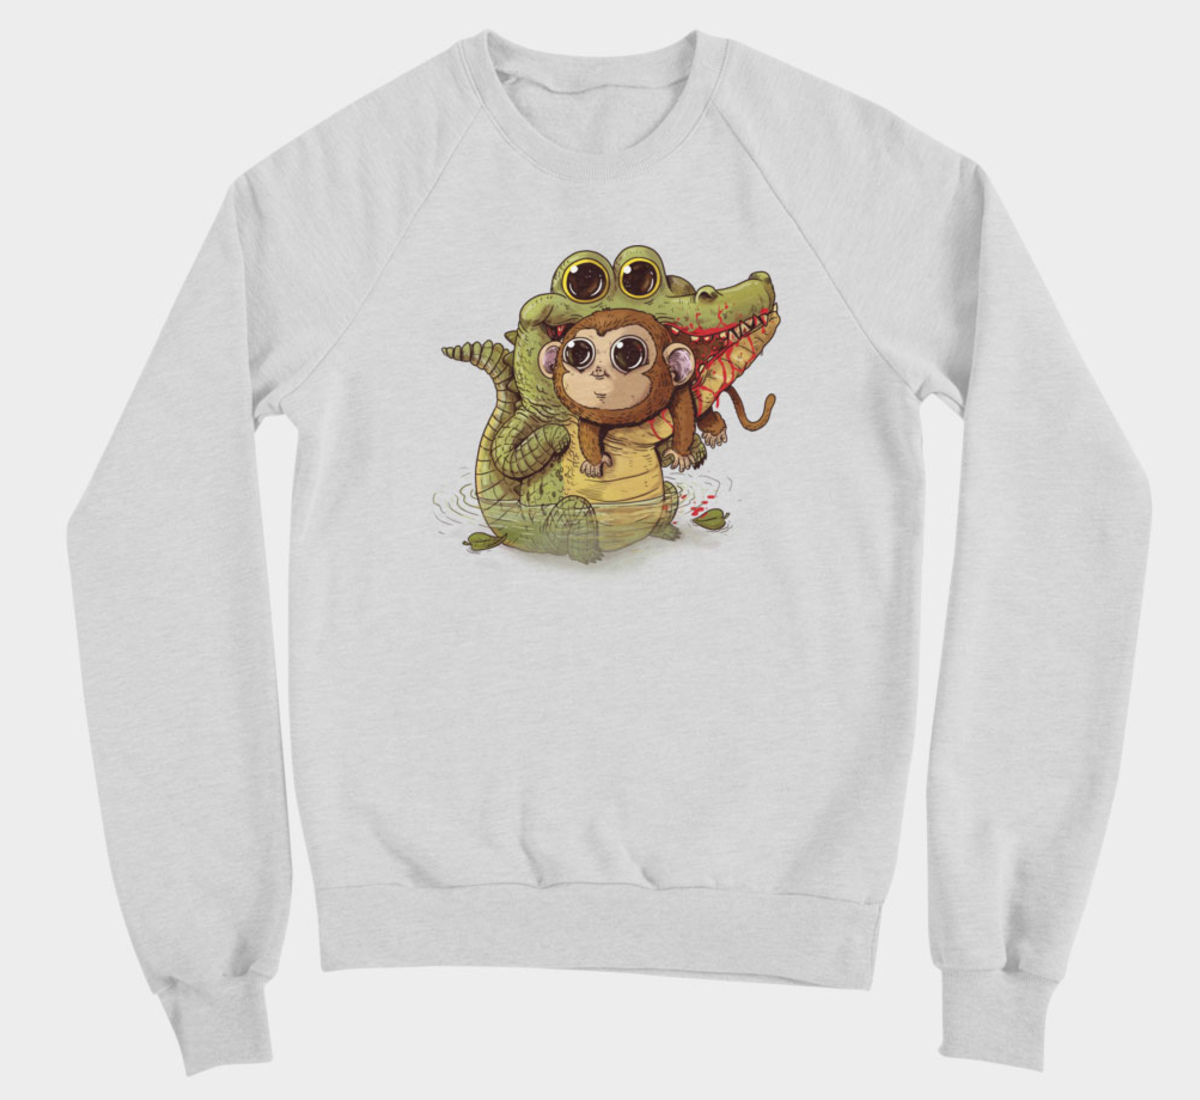 Illustration d'Alex Solis pour Adorable Circle of Life : Crocodile et singe sur pull